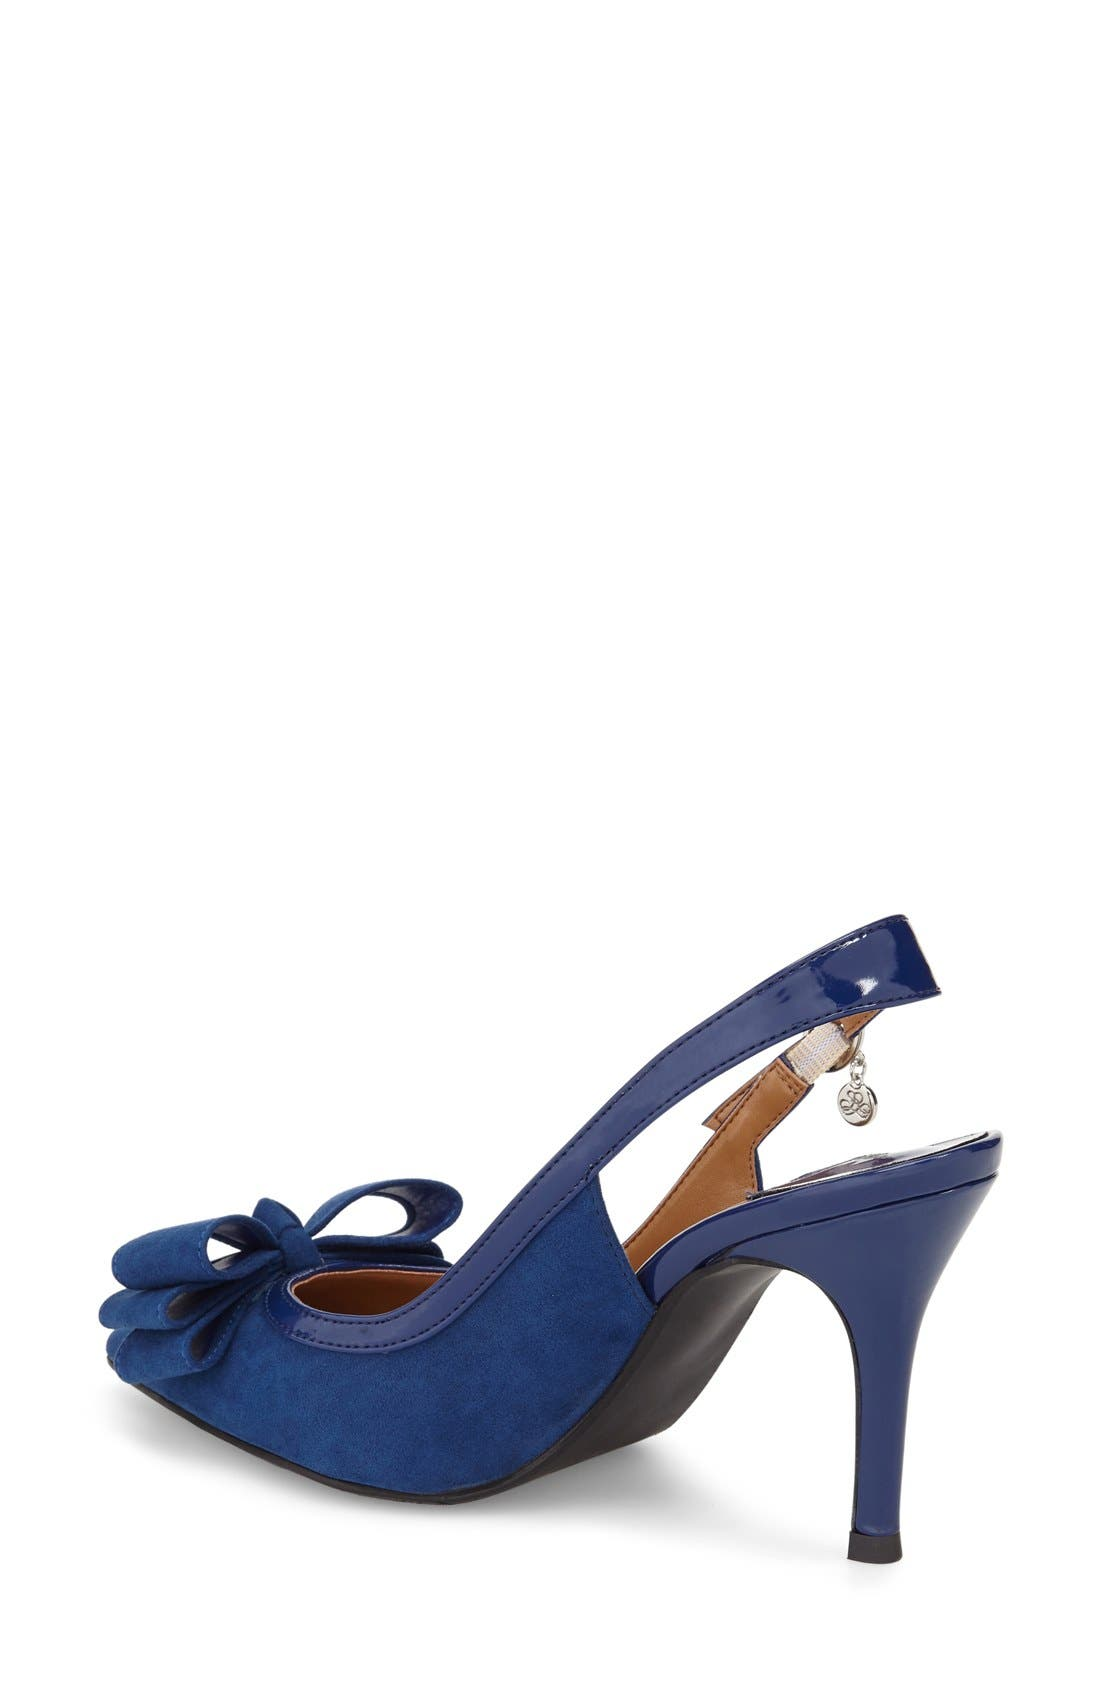 Charis Slingback Bow Pump,                             Alternate thumbnail 2, color,                             Imperial Blue Faux Suede